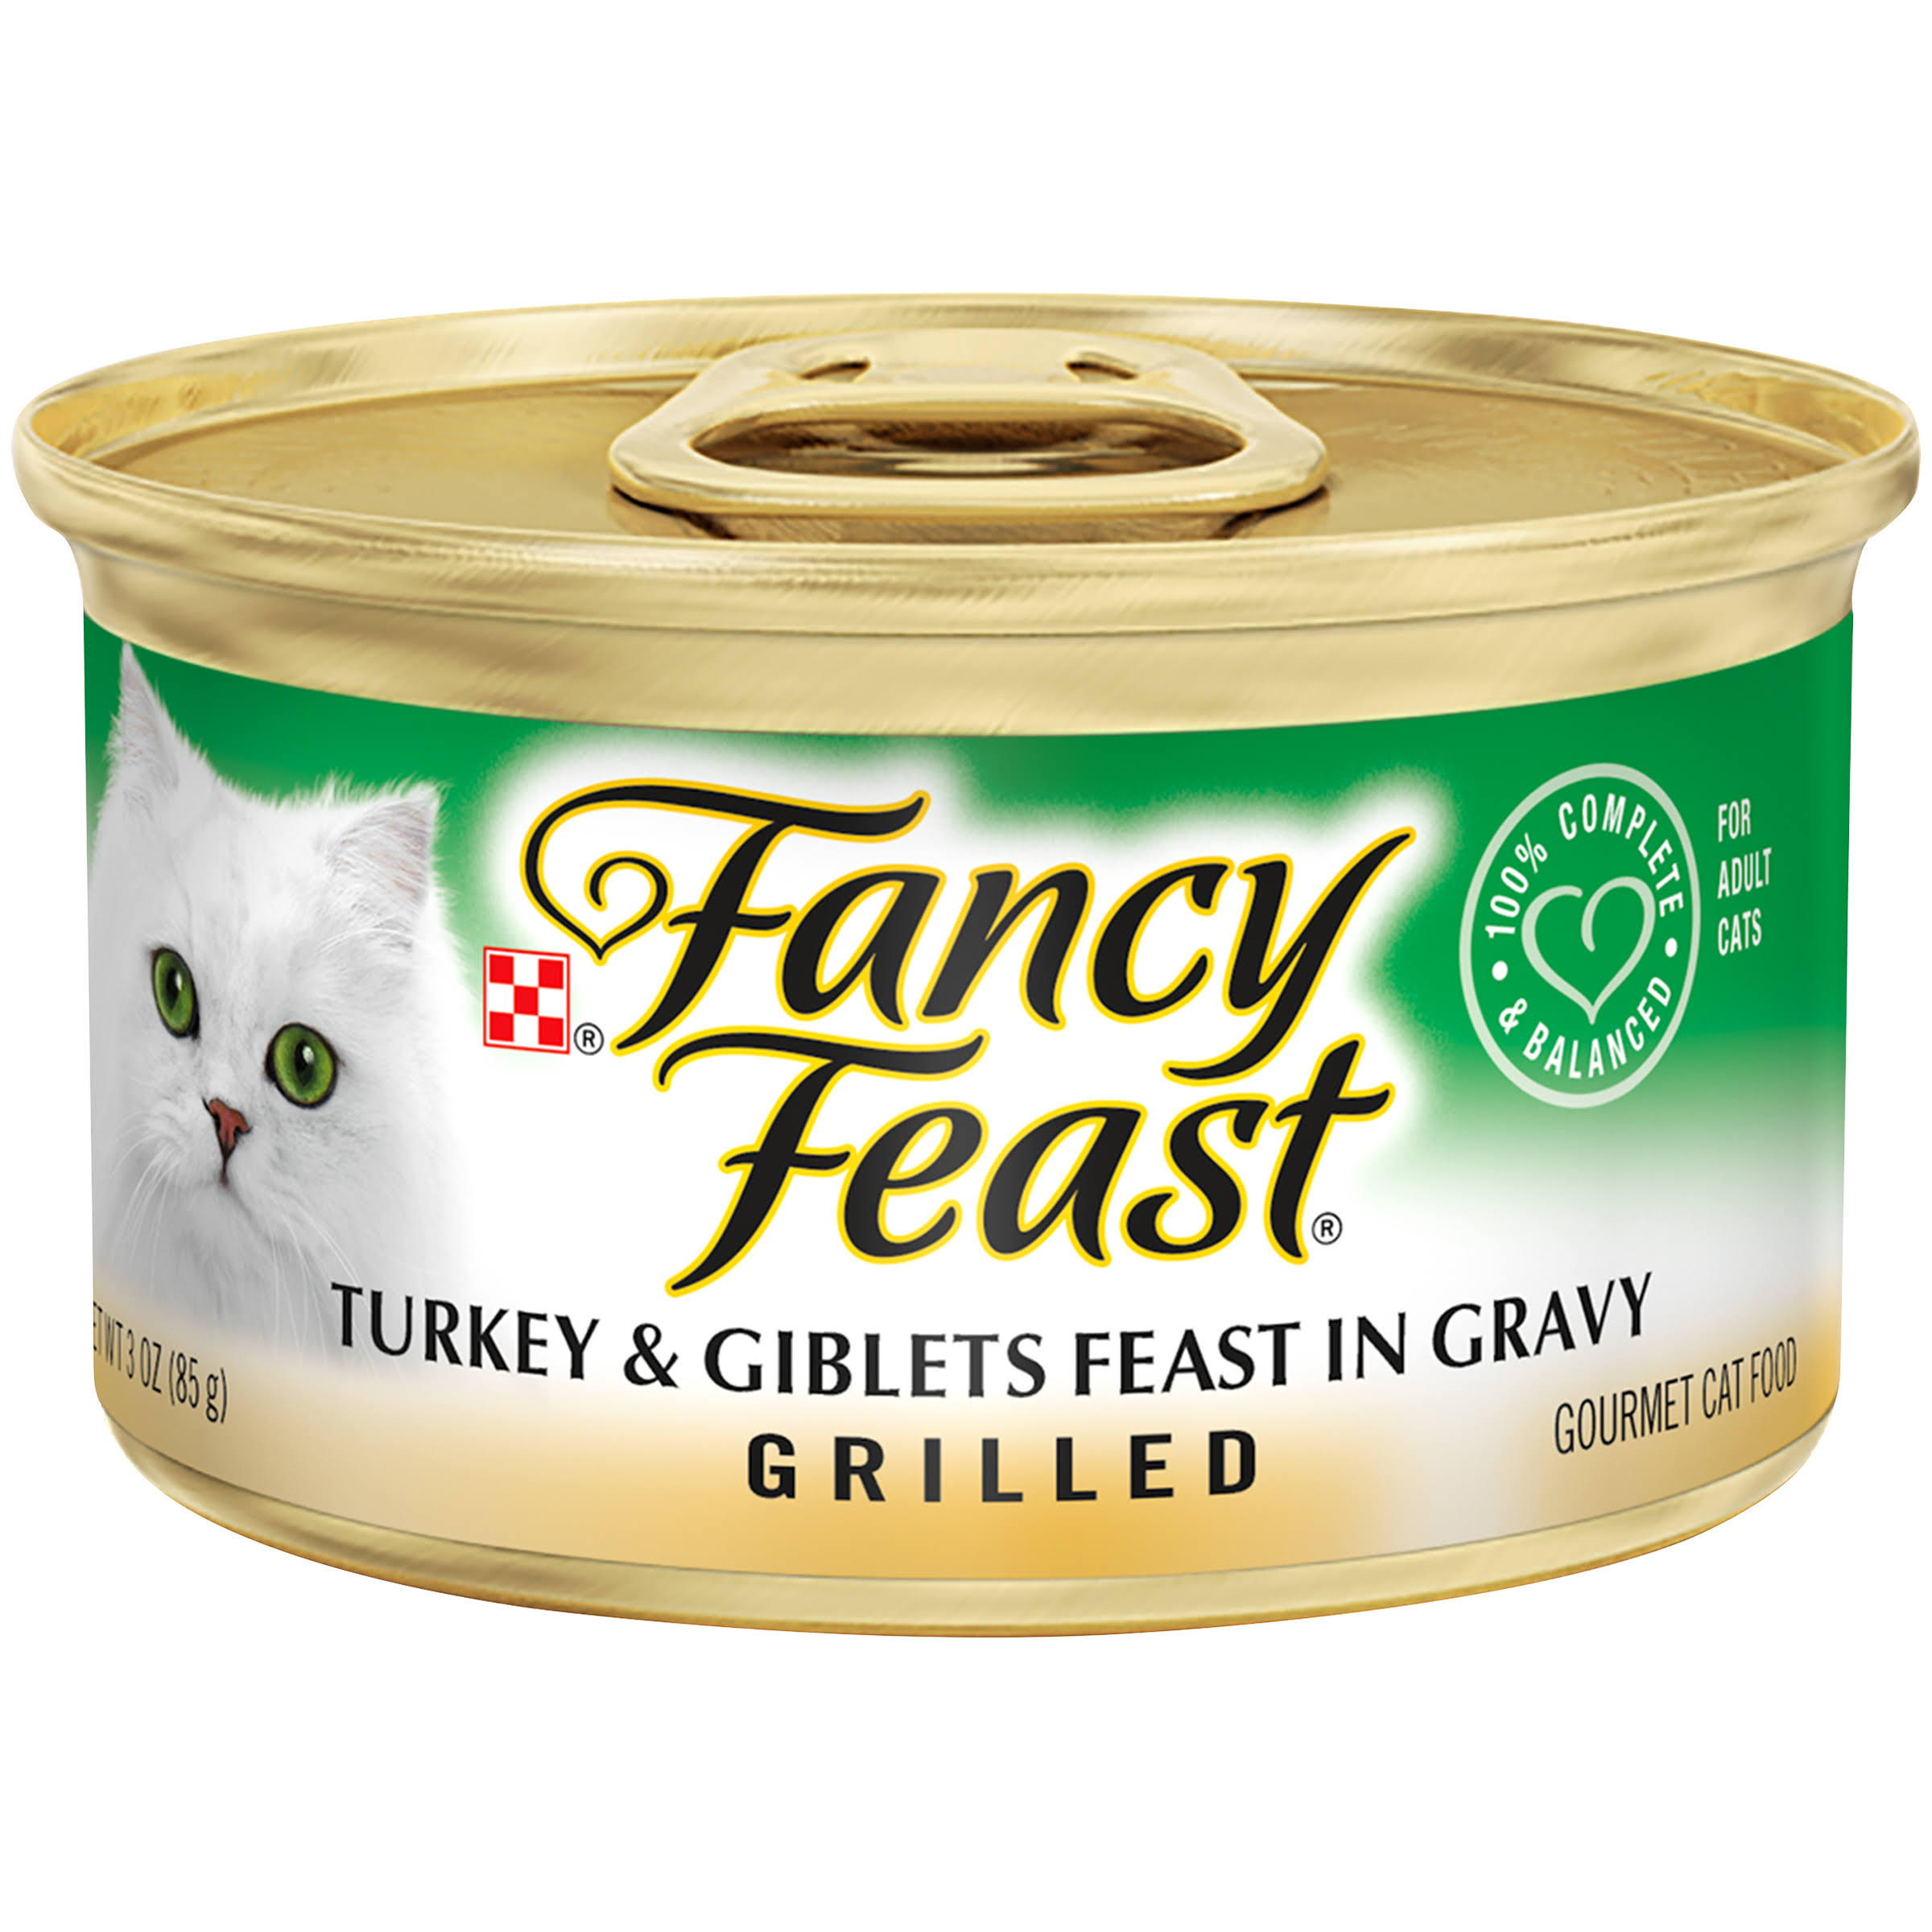 Purina Fancy Feast Grilled Feast in Gravy Gourmet Cat Food - Turkey and Giblets, 3oz